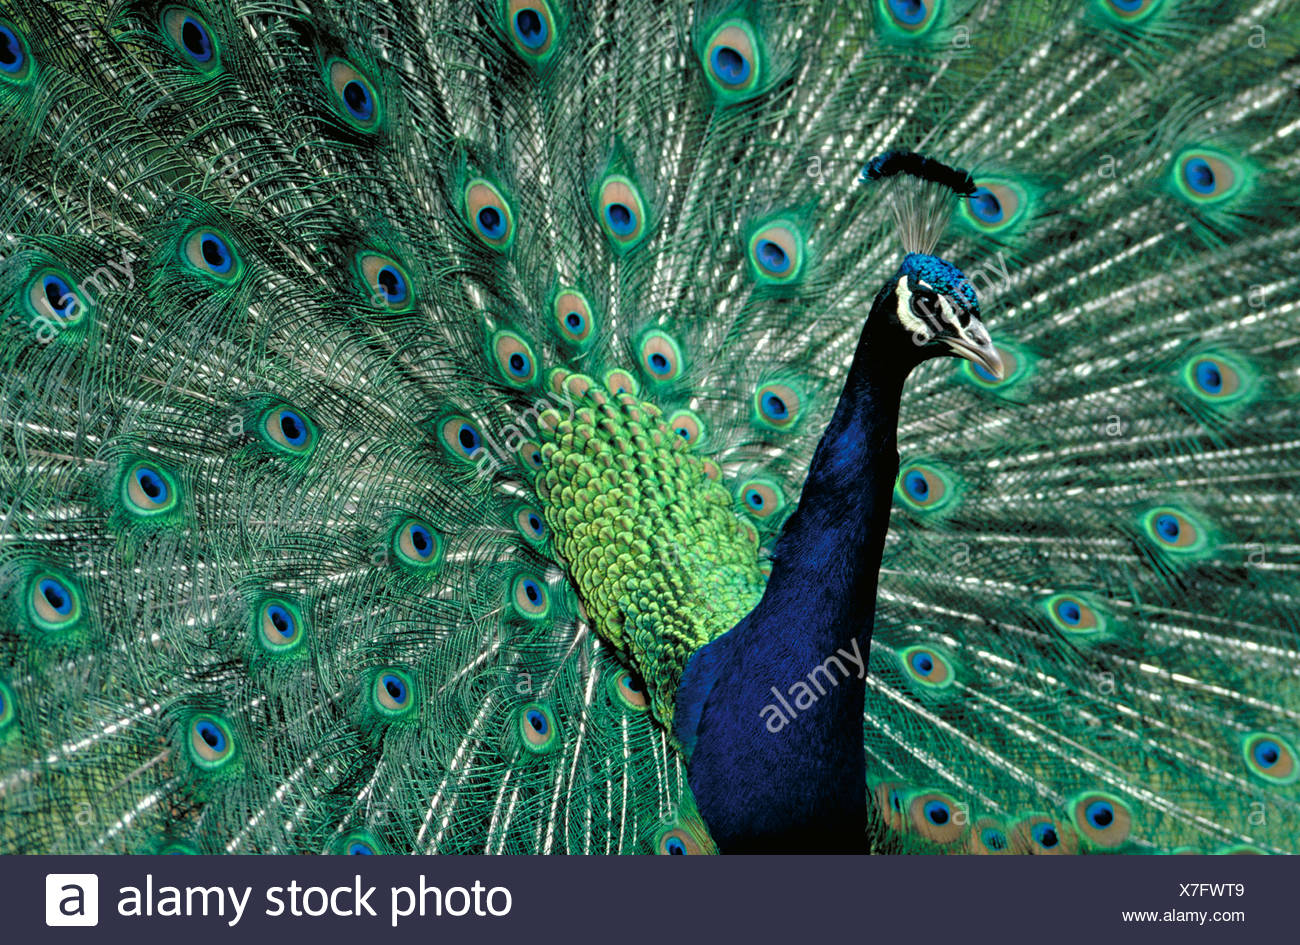 Peacock spreads his colorful tail feathers. - Stock Image